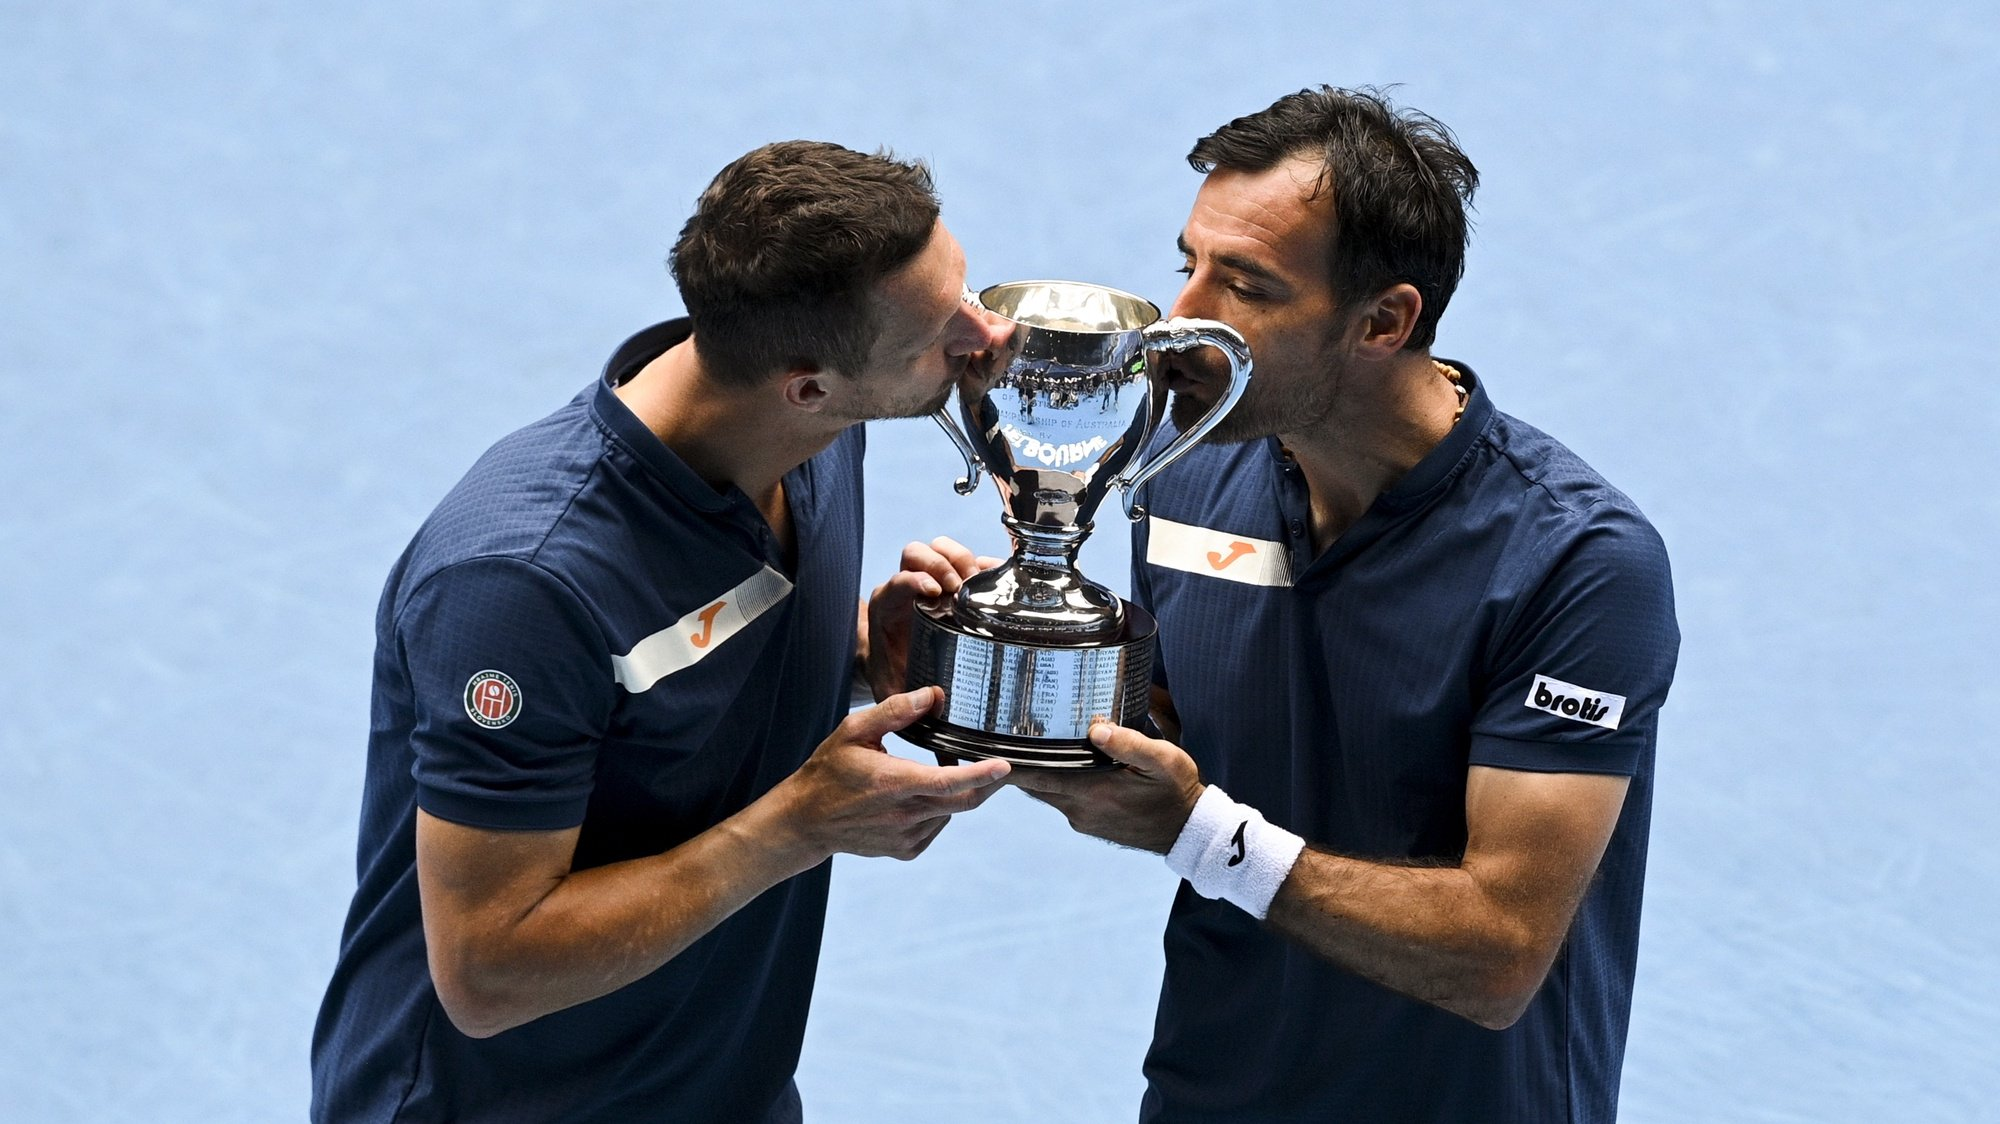 epa09027092 Filip Polasek (L) of Slovakia and Ivan Dodig (R) of Croatia kiss the winners trophy after winning their men's doubles finals match against Rajeev Ram of the USA and Joe Salisbury of Britain at the Australian Open grand slam tennis tournament at Melbourne Park in Melbourne, Australia, 21 February 2021.  EPA/DEAN LEWINS  AUSTRALIA AND NEW ZEALAND OUT